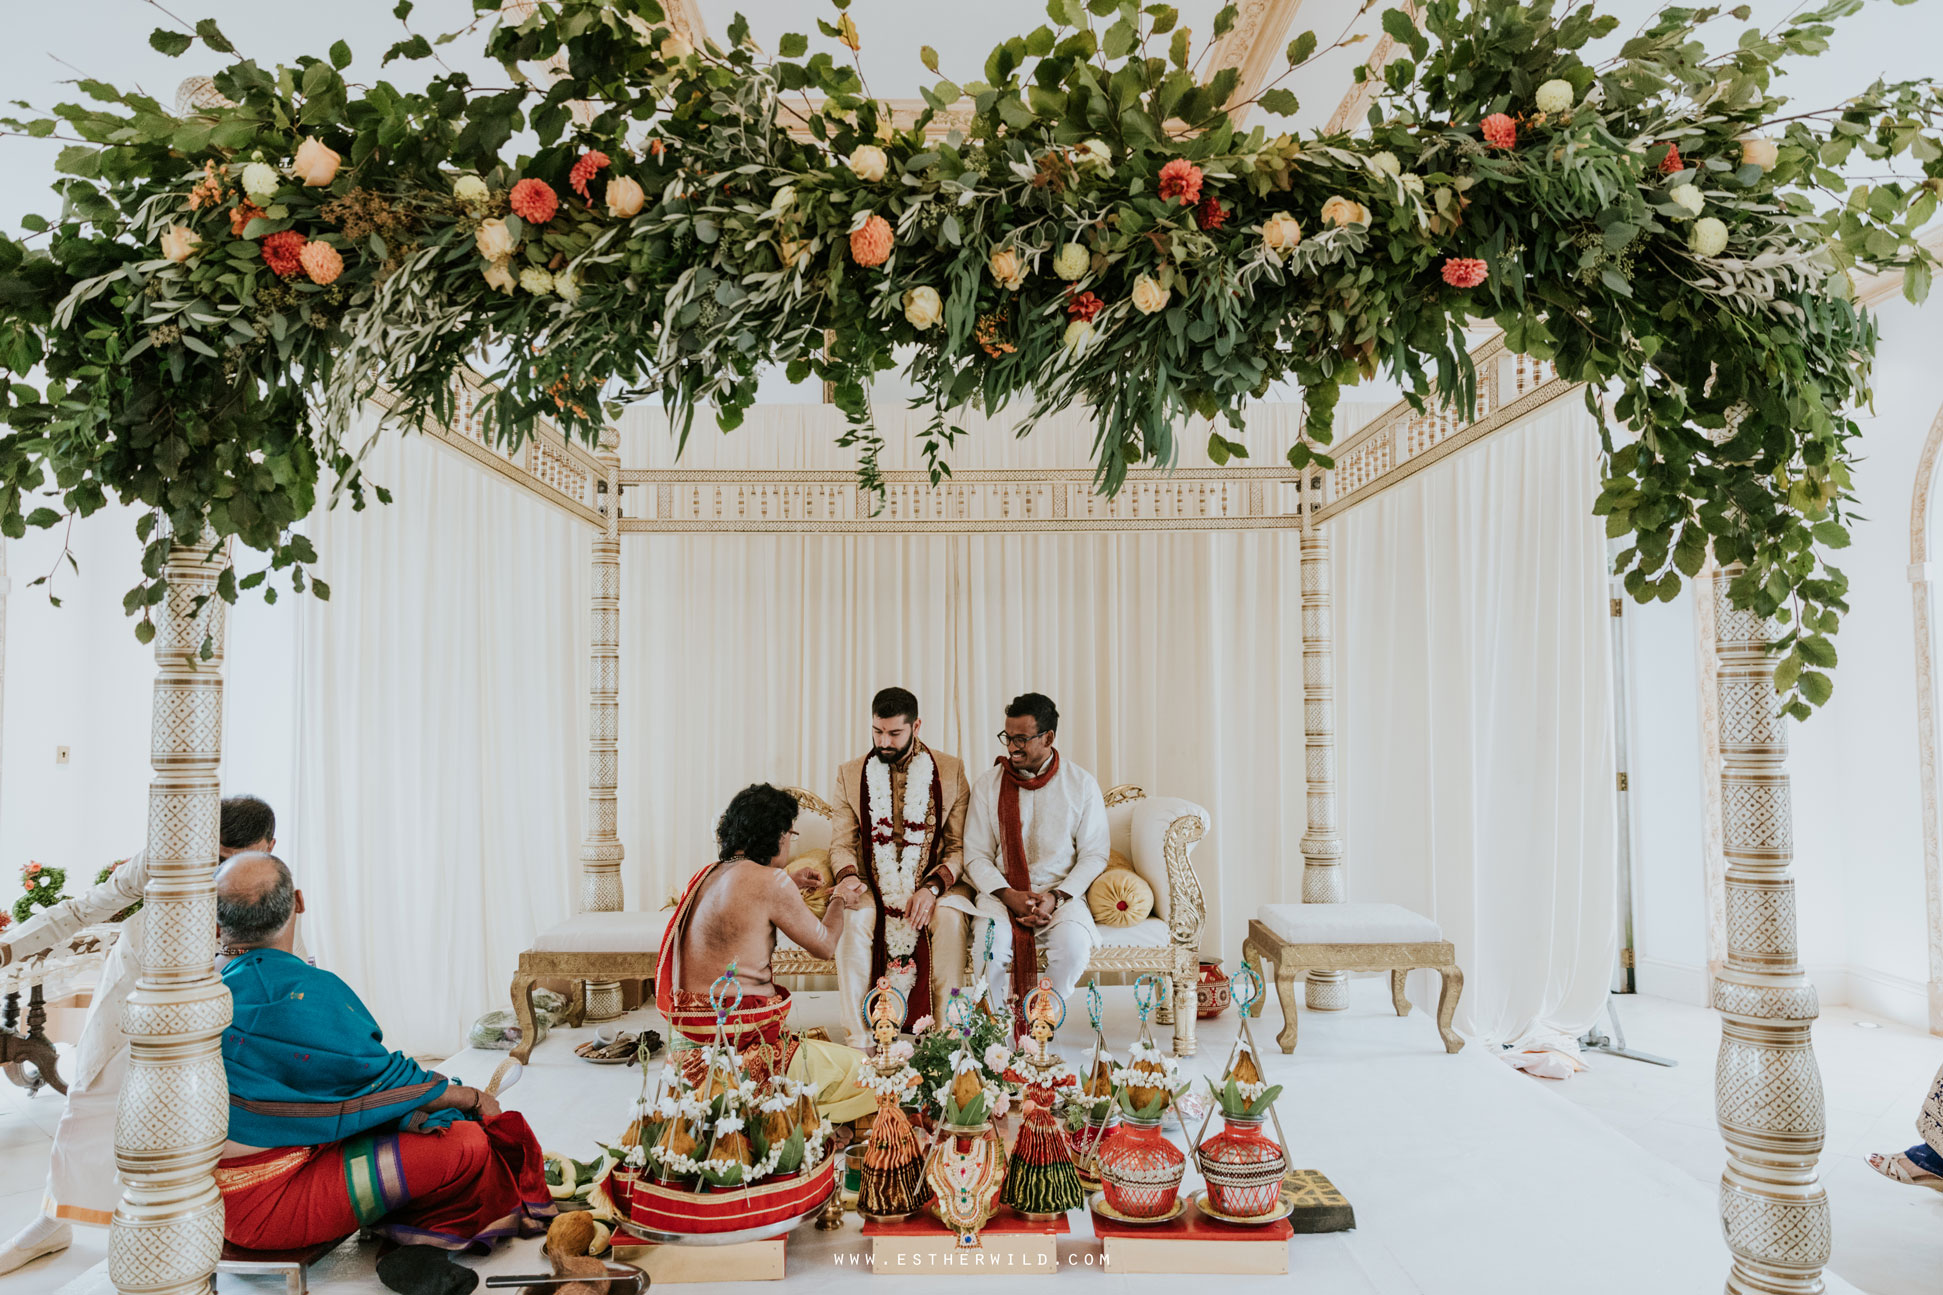 Northbrook_Park_Farnham_Surrey_London_Wedding_Hindu_Fusion_Esther_Wild_Photographer_IMG_3511.jpg